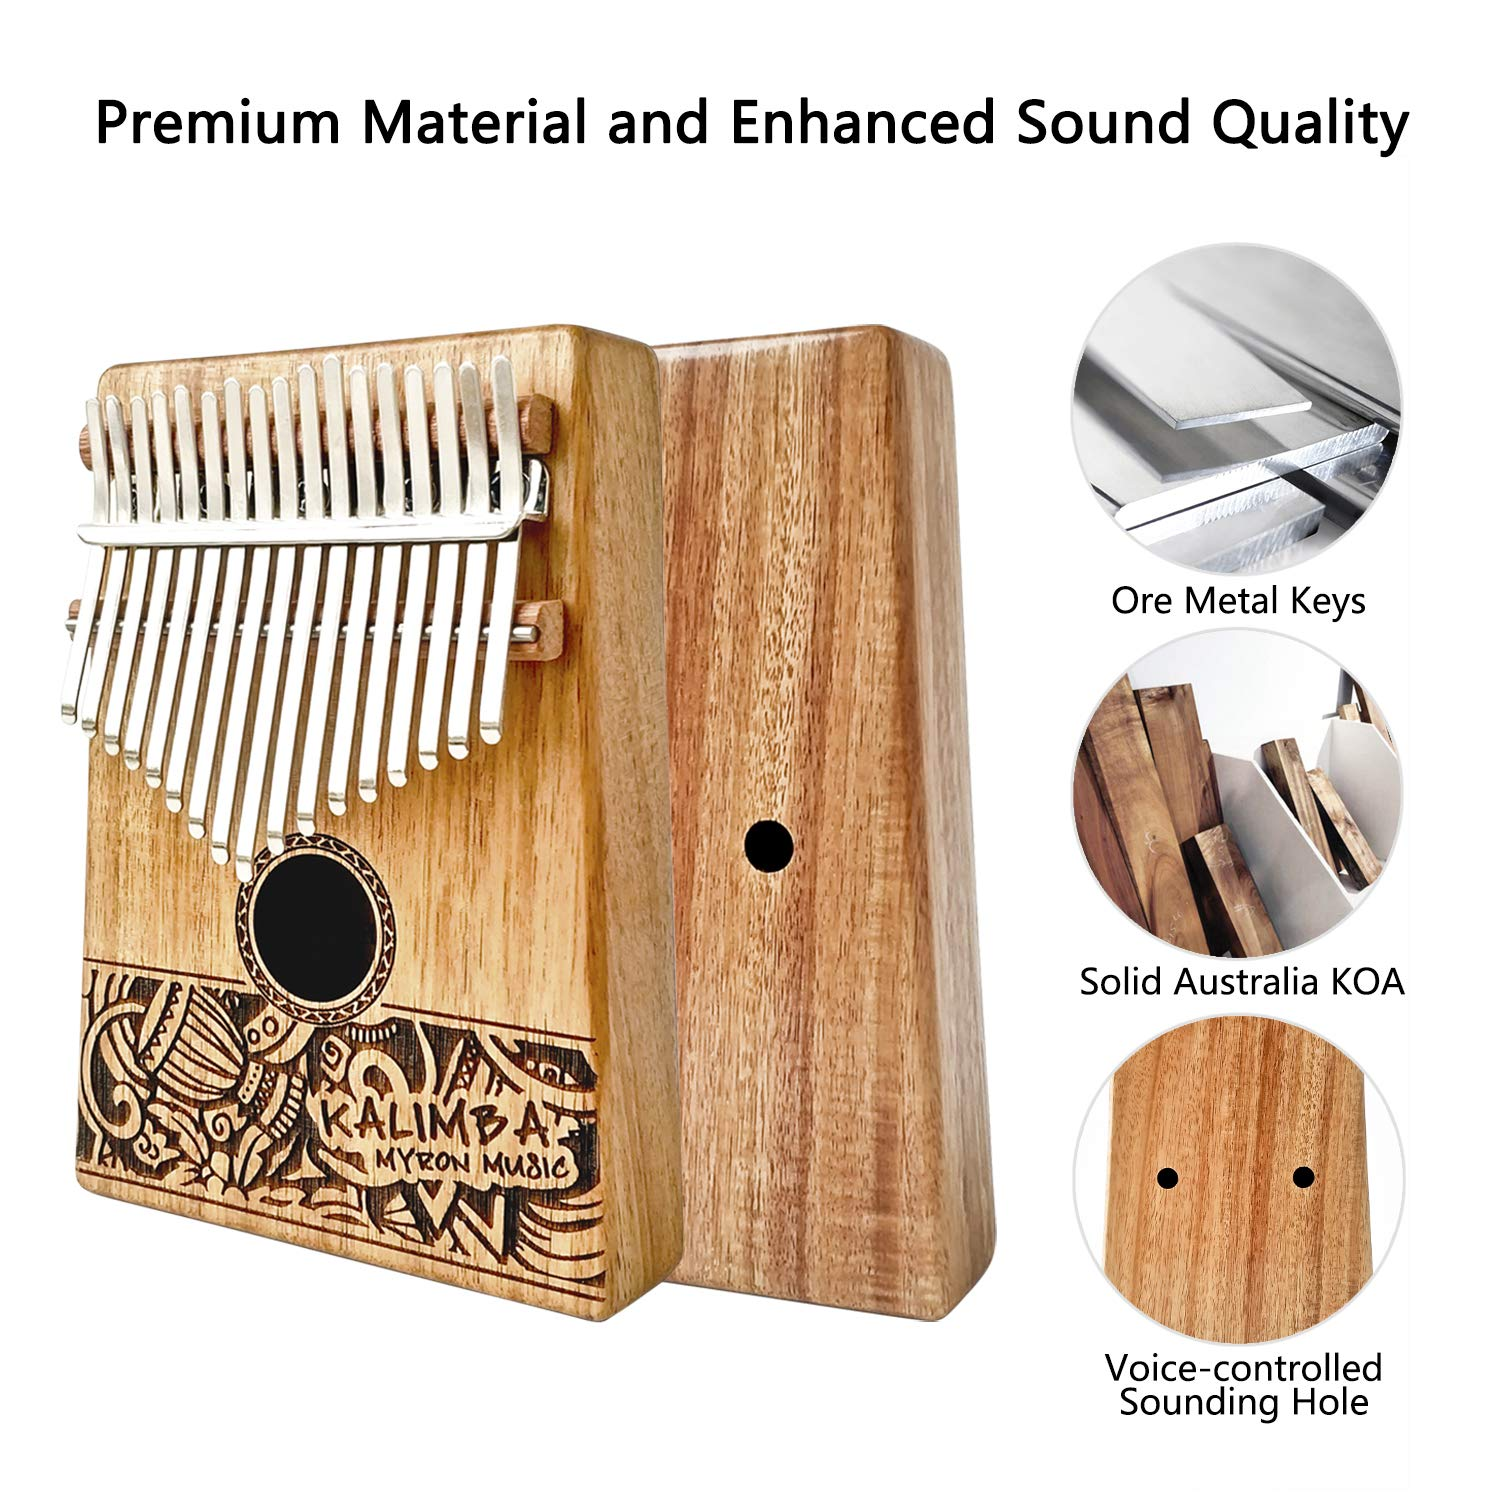 MYRON Kalimba 17keys Thumb Piano Solid Koa with Portable Protective Case, tuning hammer chord sticker and sutdy instruction by Myron (Image #2)